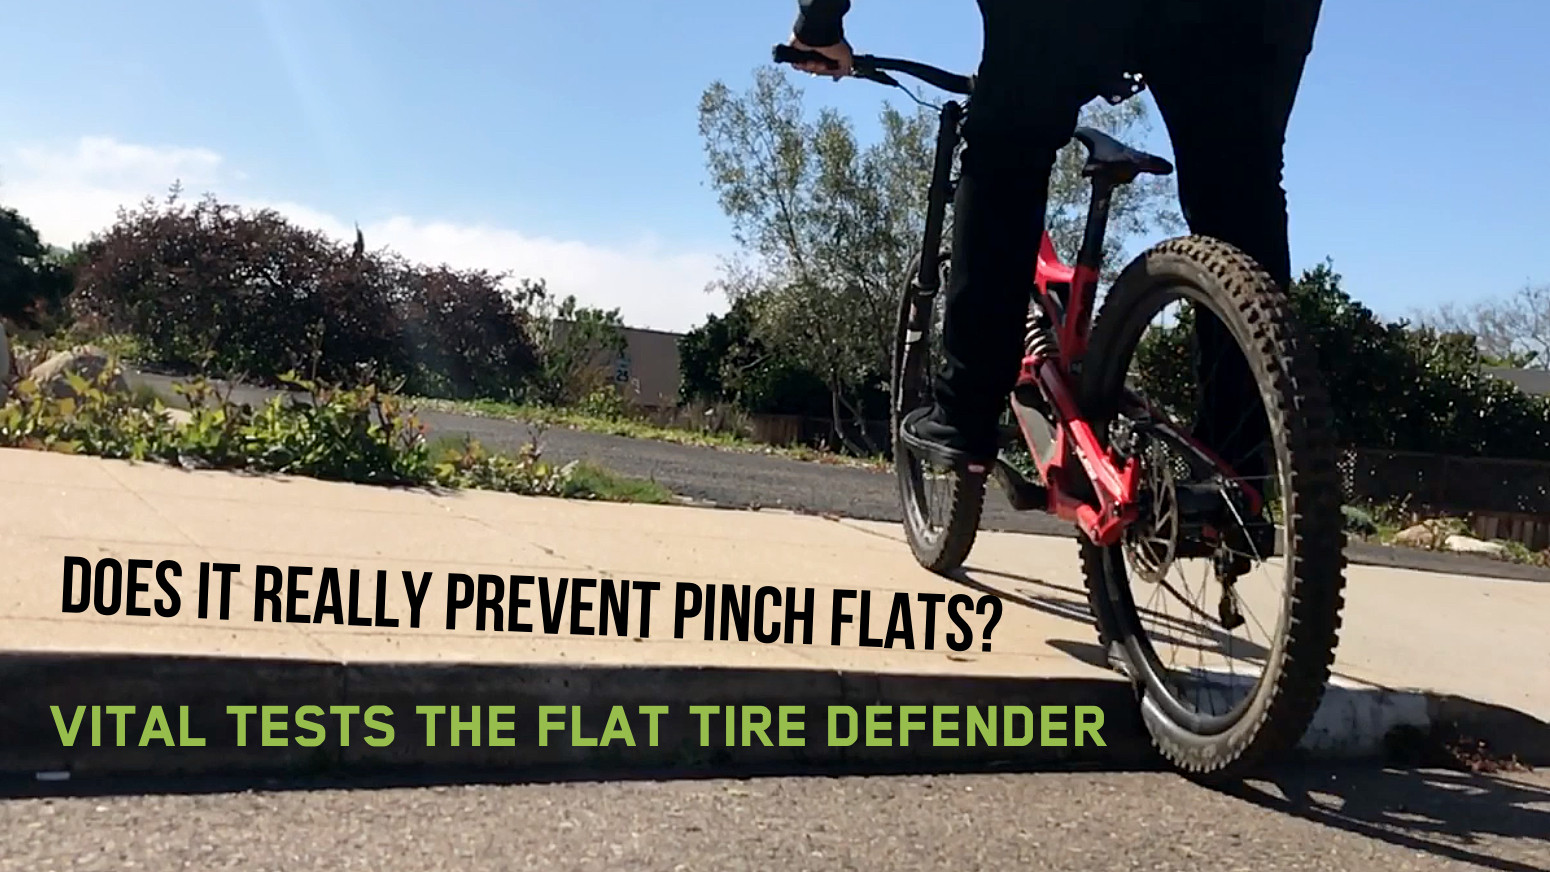 Does It Really Prevent Pinch Flats? Vital Tests the Flat Tire Defender